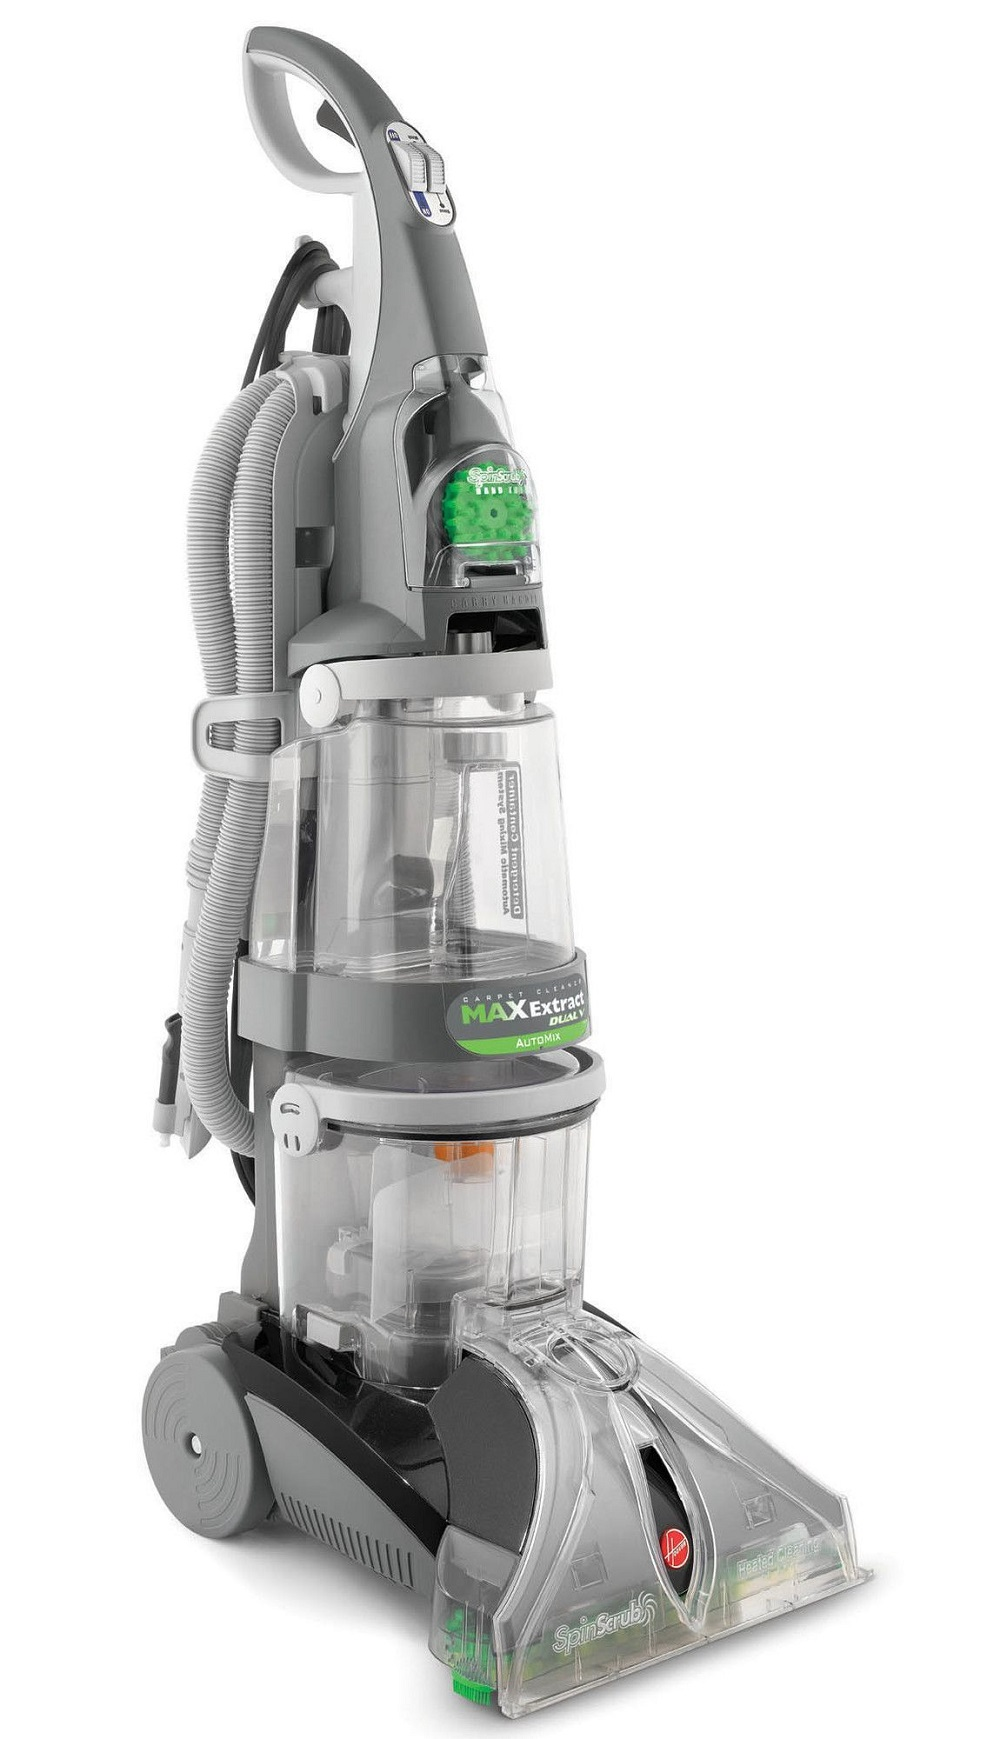 t3-47 The best upholstery steam cleaner you can buy online